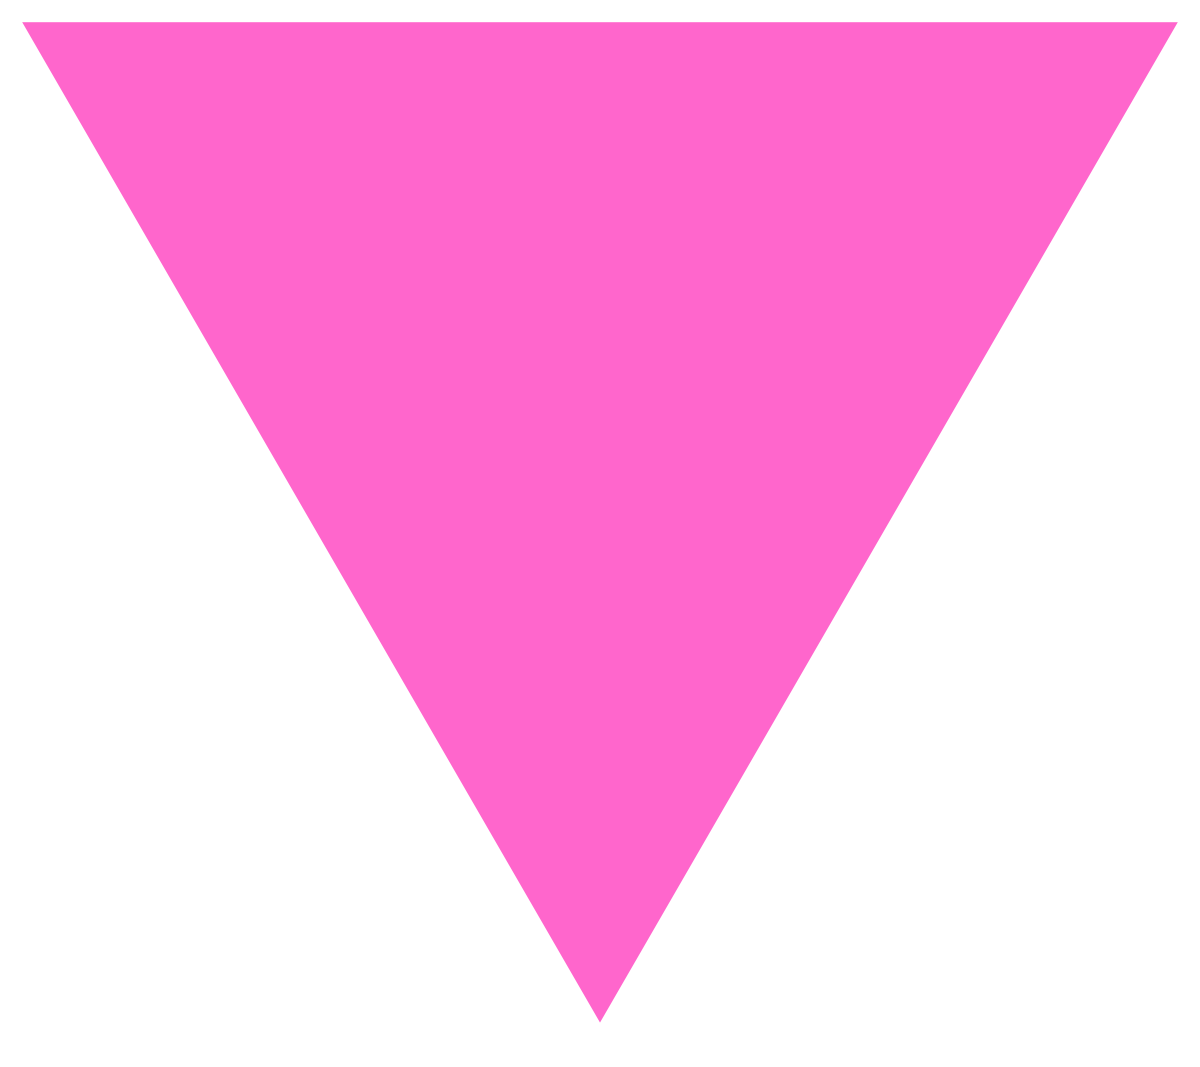 Silver C Yellow Triangle Logo - Pink triangle